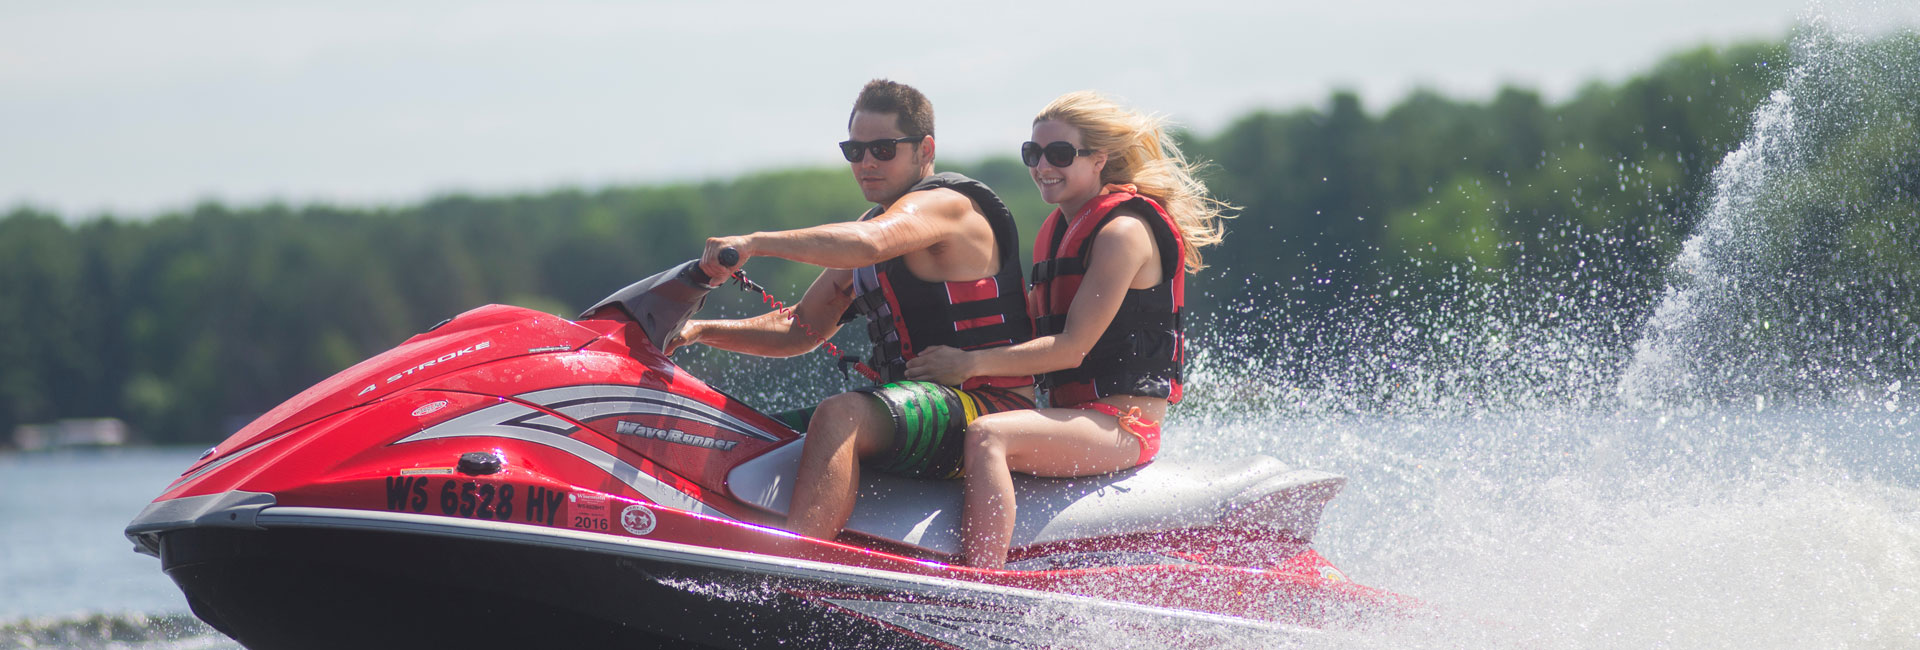 Waverunner Rentals on Lake Delton